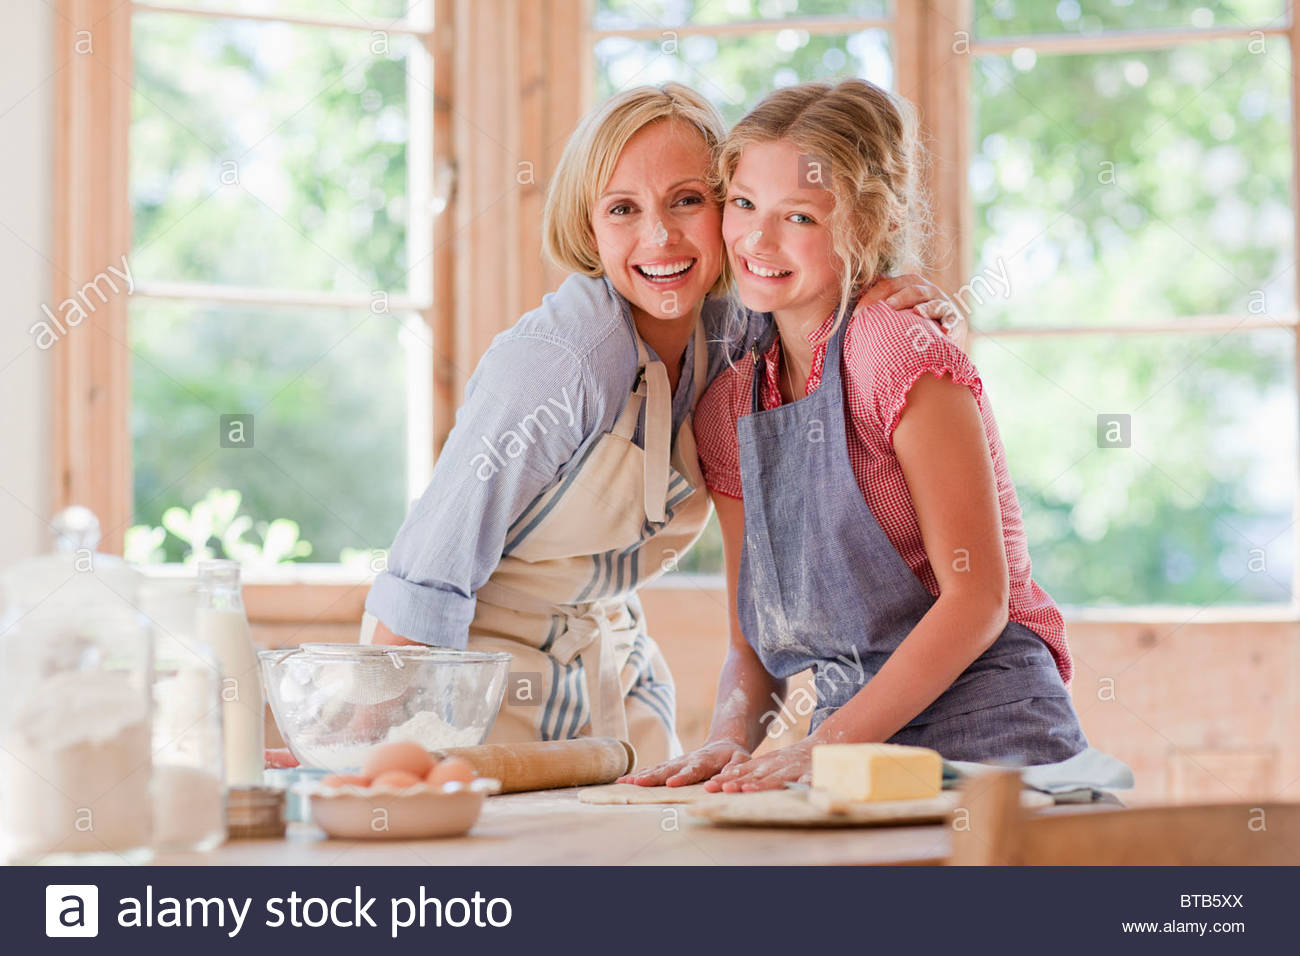 Smiling mother and daughter hugging and baking in kitchen - Stock Image